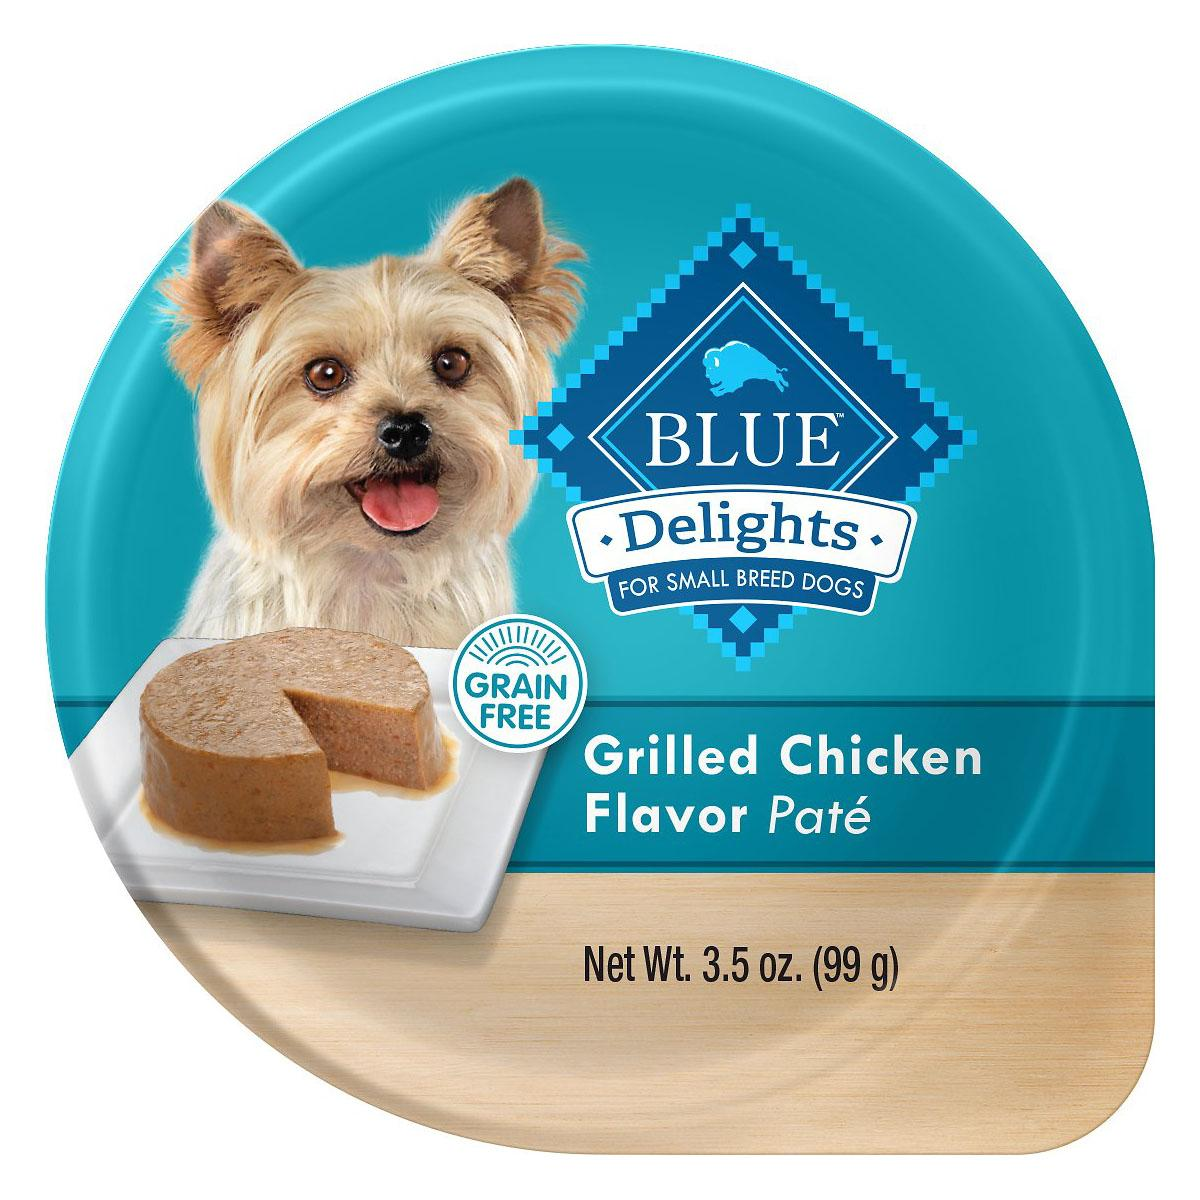 Blue Buffalo Divine Delights Small Breed Dog Food - Grilled Chicken